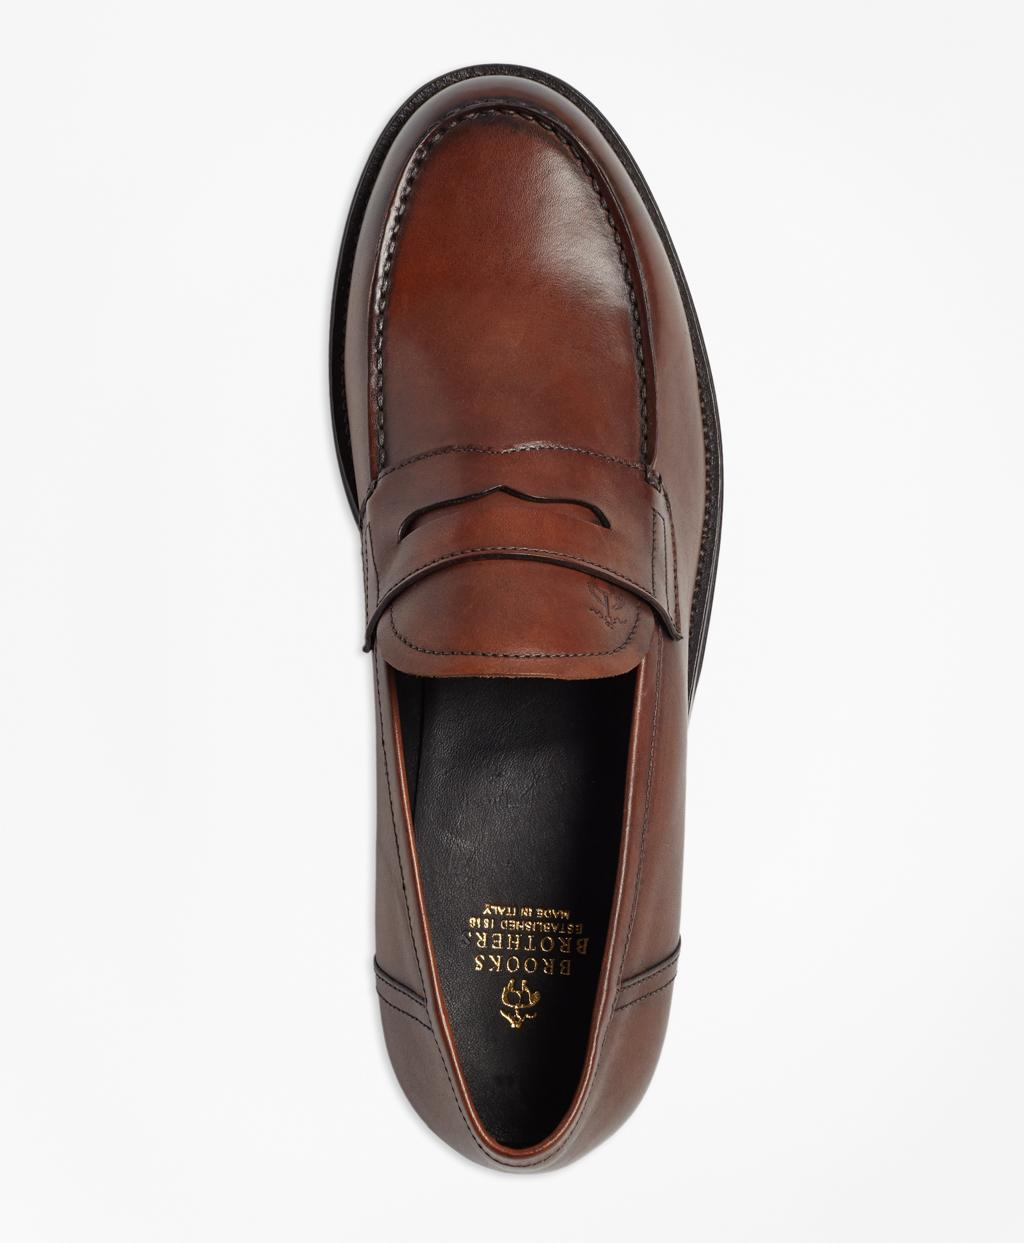 b6bd78824e657 Lyst - Brooks Brothers 1818 Footwear Leather Penny Loafers in Brown ...